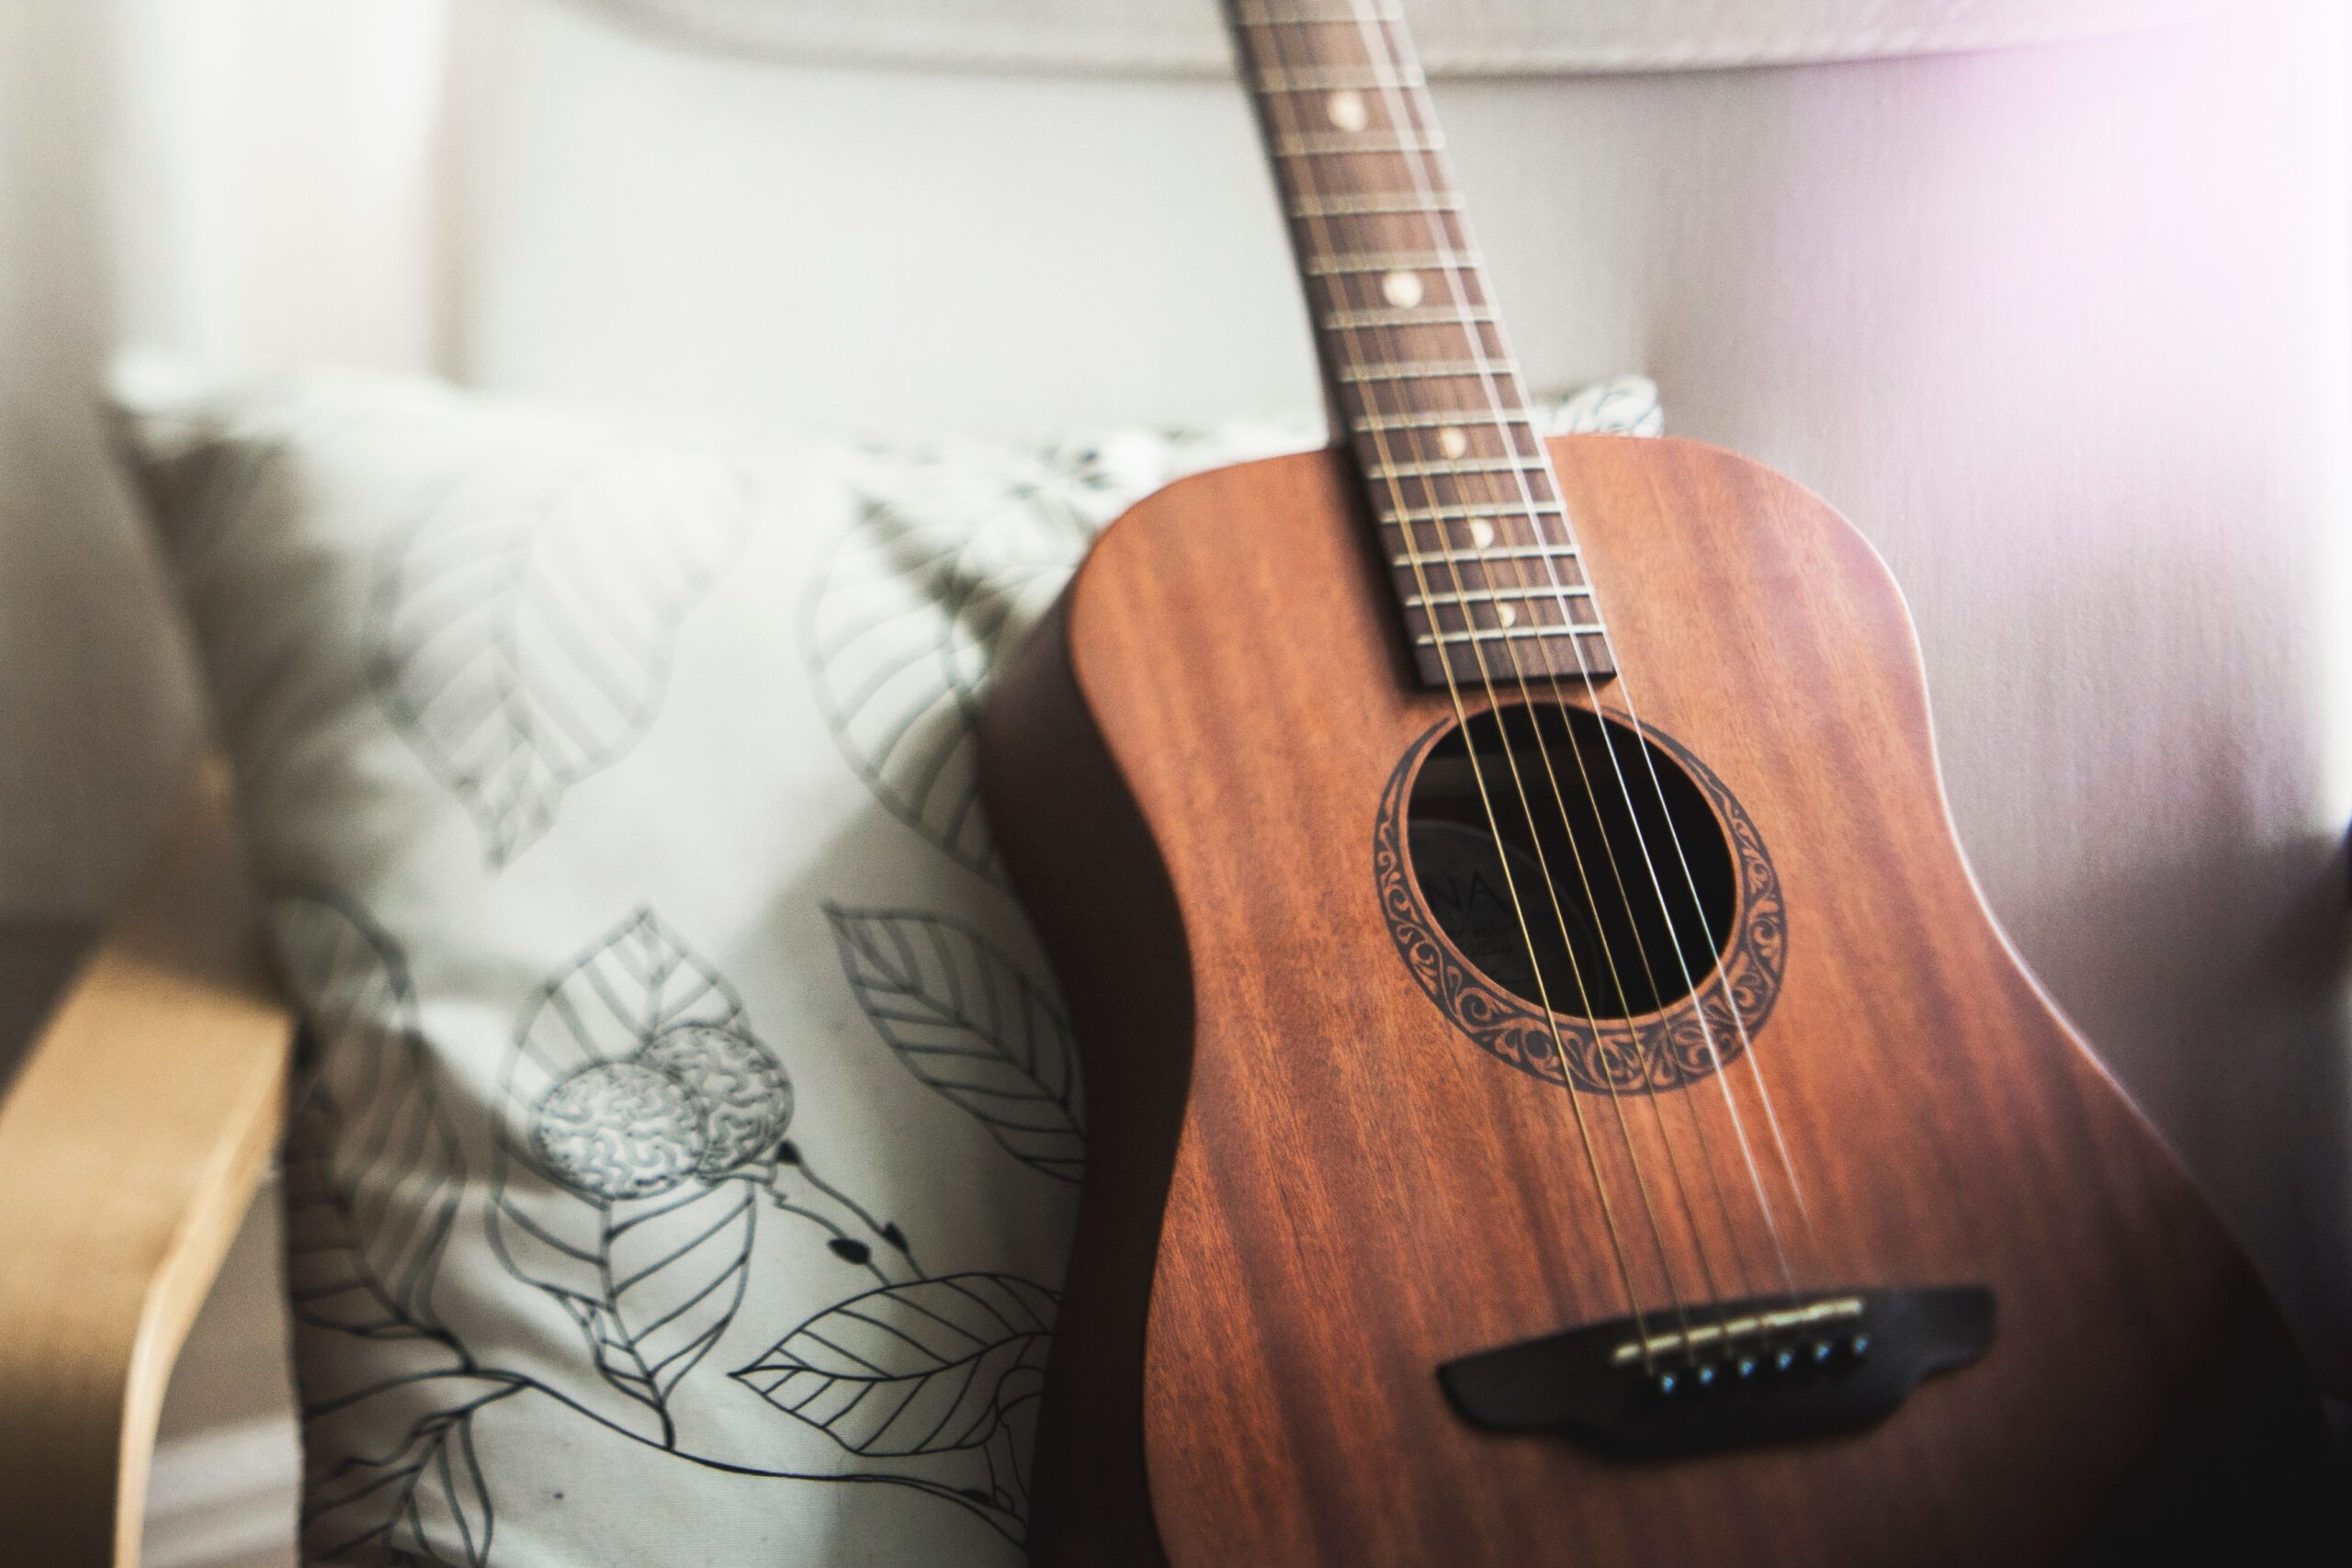 Brown Guitar - How To Play Guitar For Beginners: A Step-by-Step Guide